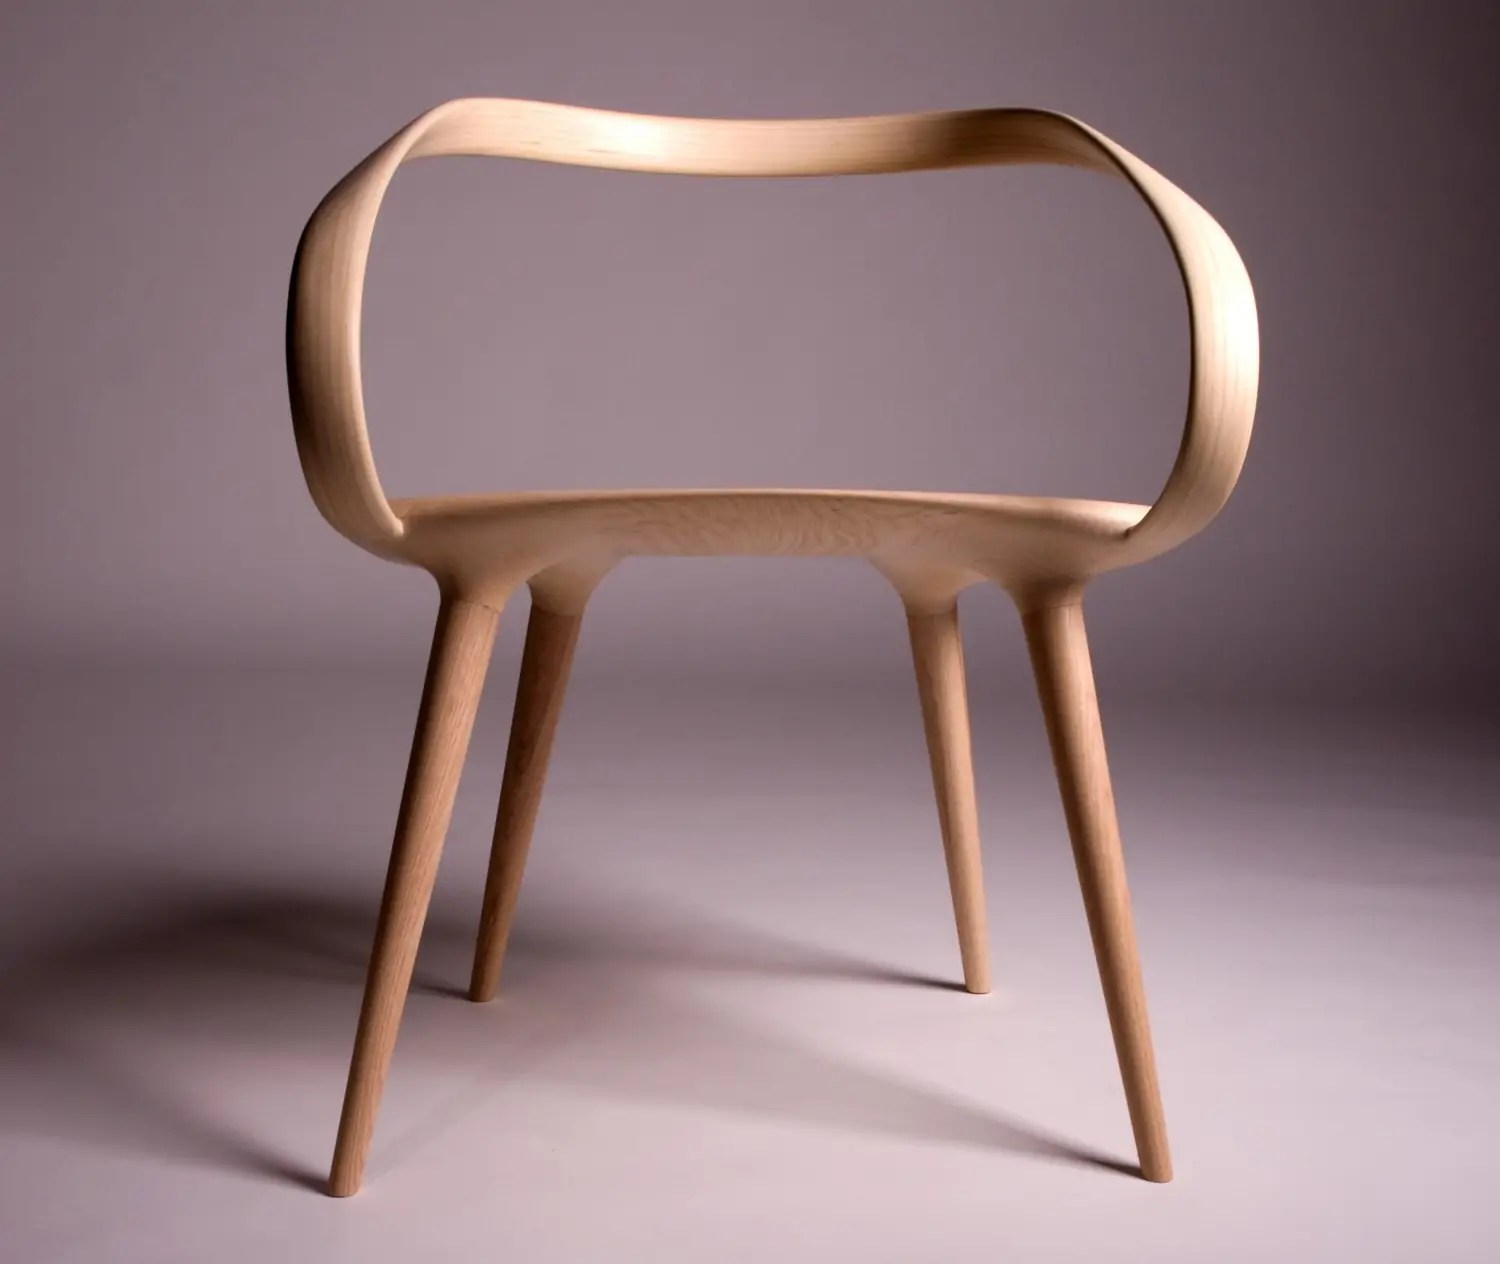 Made From Ash, The Unique And Modern Take On Bent Plywood Has  Unsurprisingly Earned Waterston Some Much Deserved Attention. This Week The  Chair Was ...